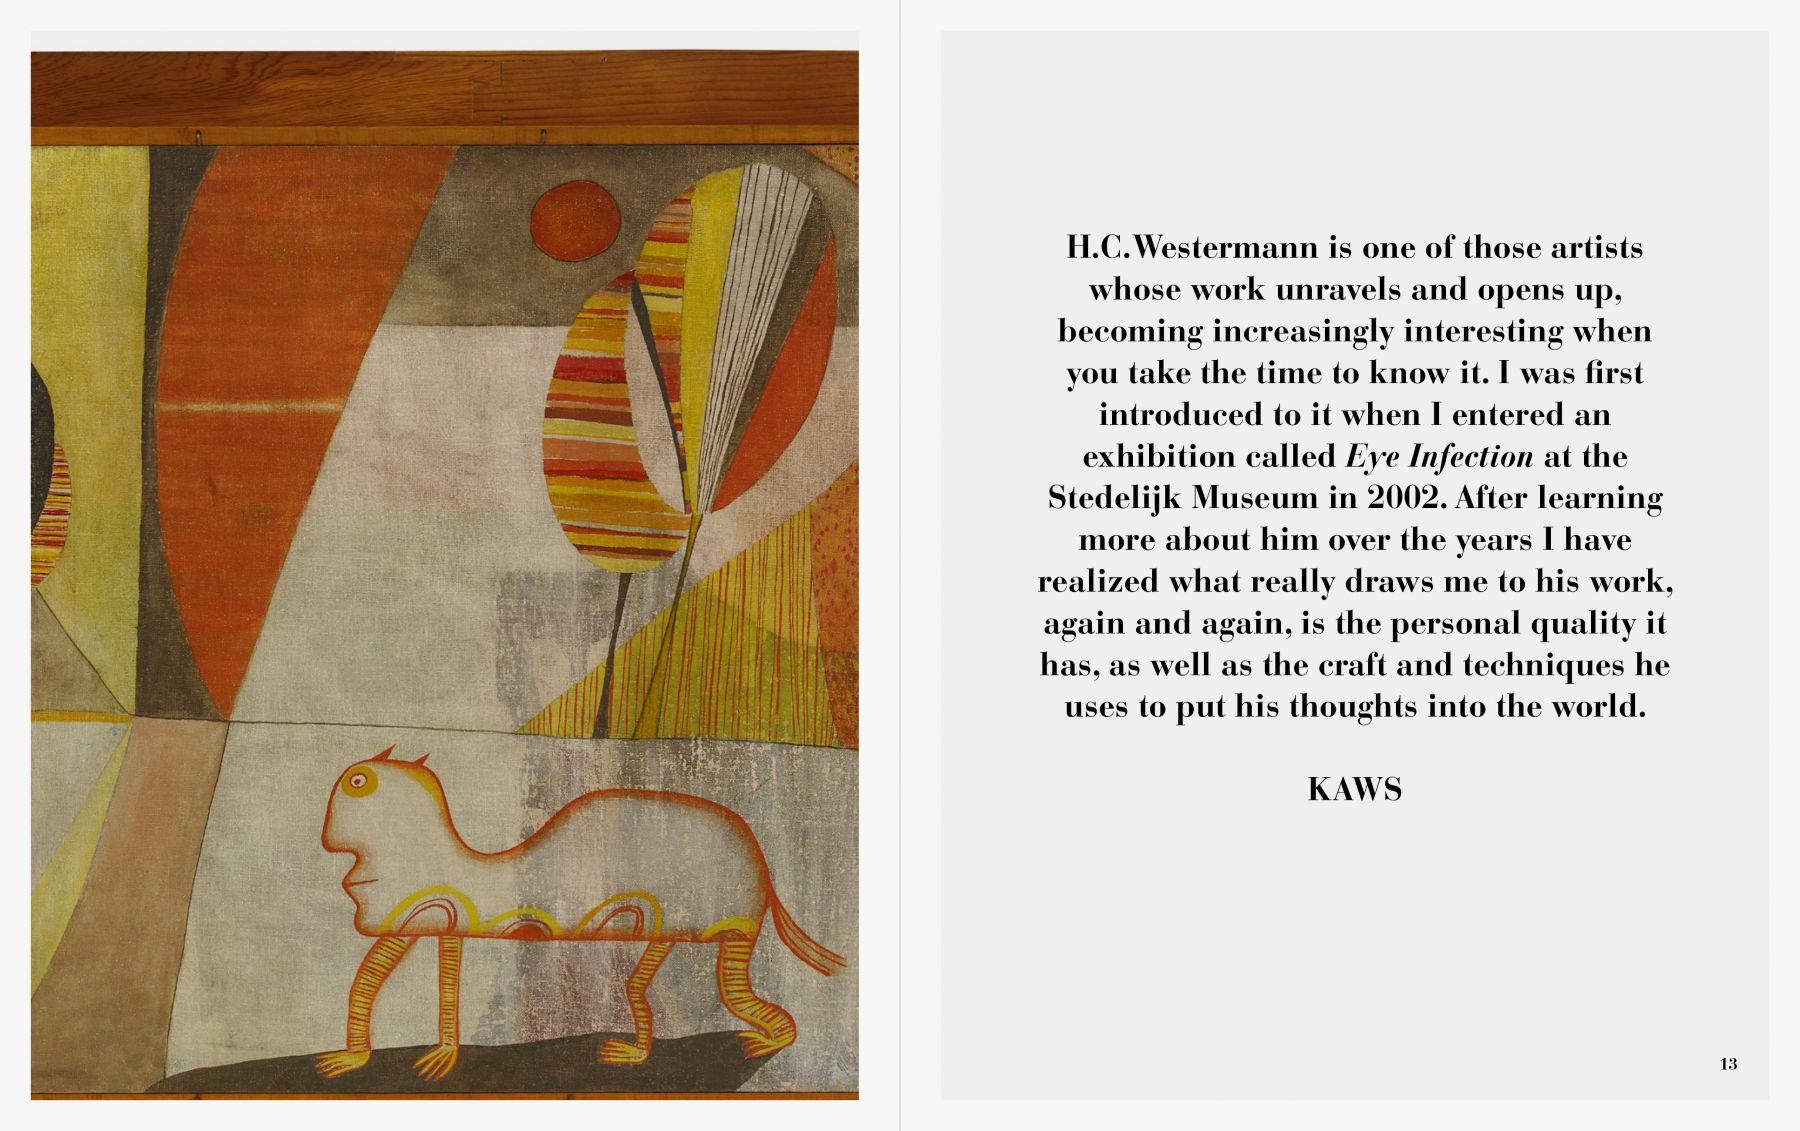 Interior view of of H.C. Westermann, published by Venus Over Manhattan, New York, 2016